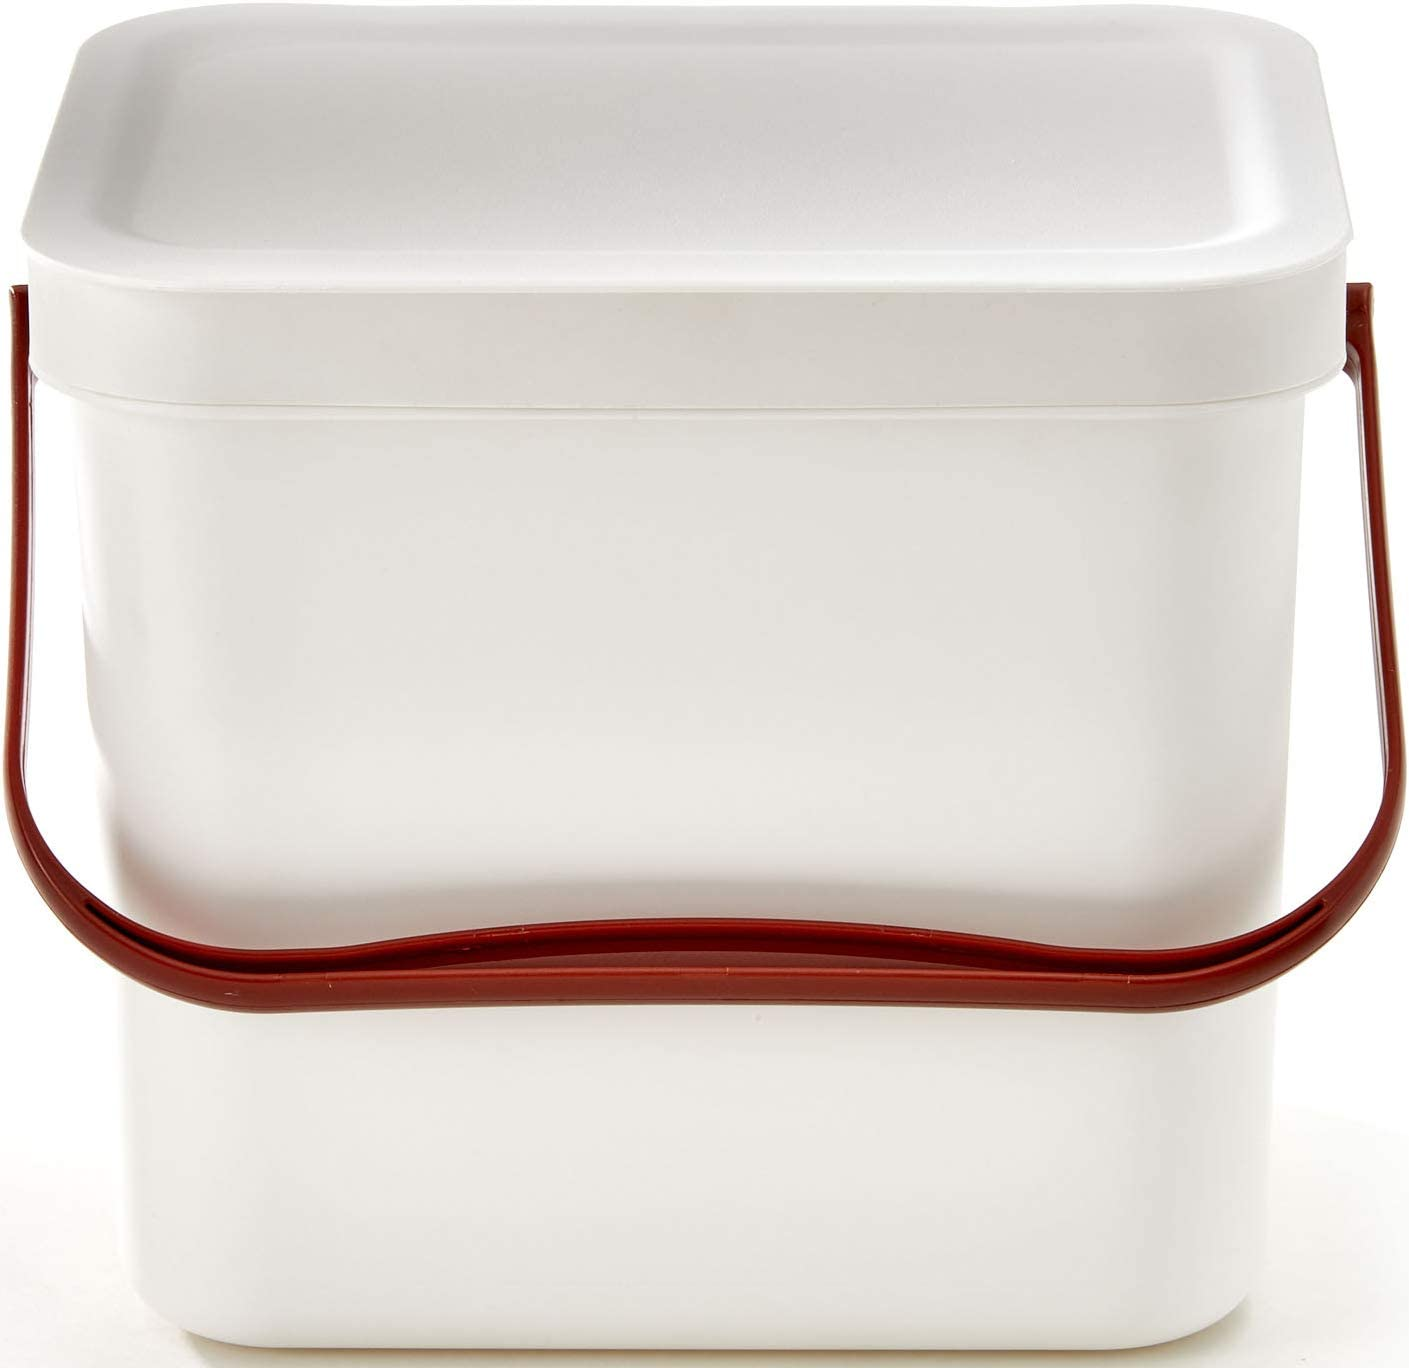 Modern Oversized 1.8 Gallon Plastic Kitchen White Compost Bin with Locking Lid - Sturdy Construction & Odor-Free Seal to Prevent Bugs & Smell – Scandinavian Modern Design and Dishwasher Safe